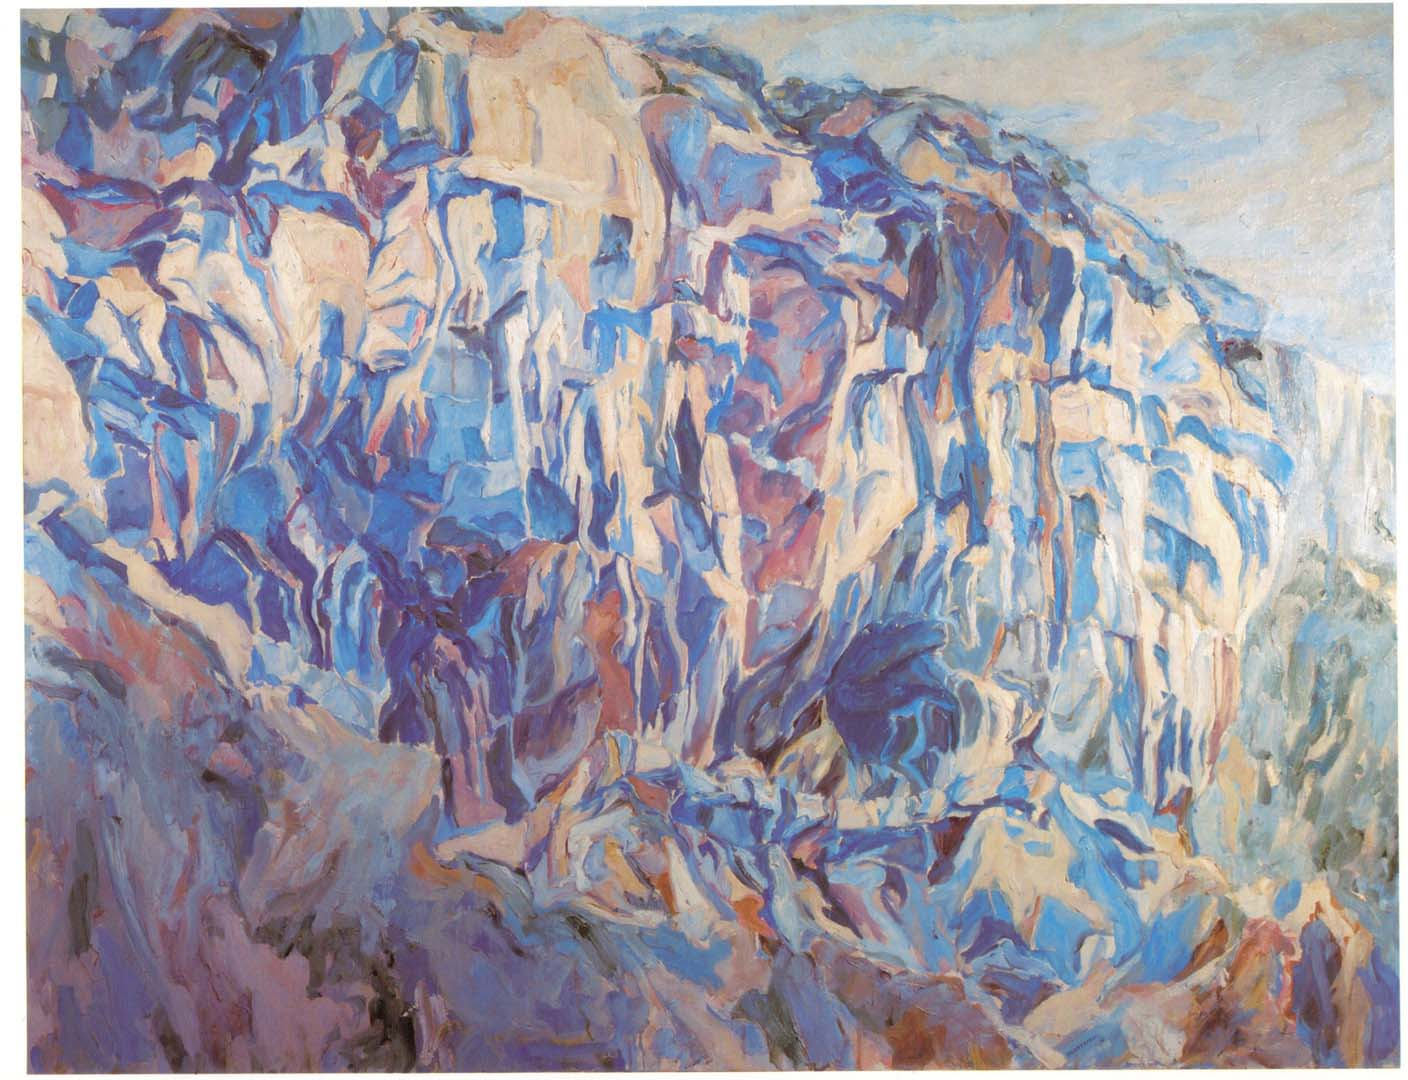 1961 Cliff Amalfi Oil on Canvas 54 x 70